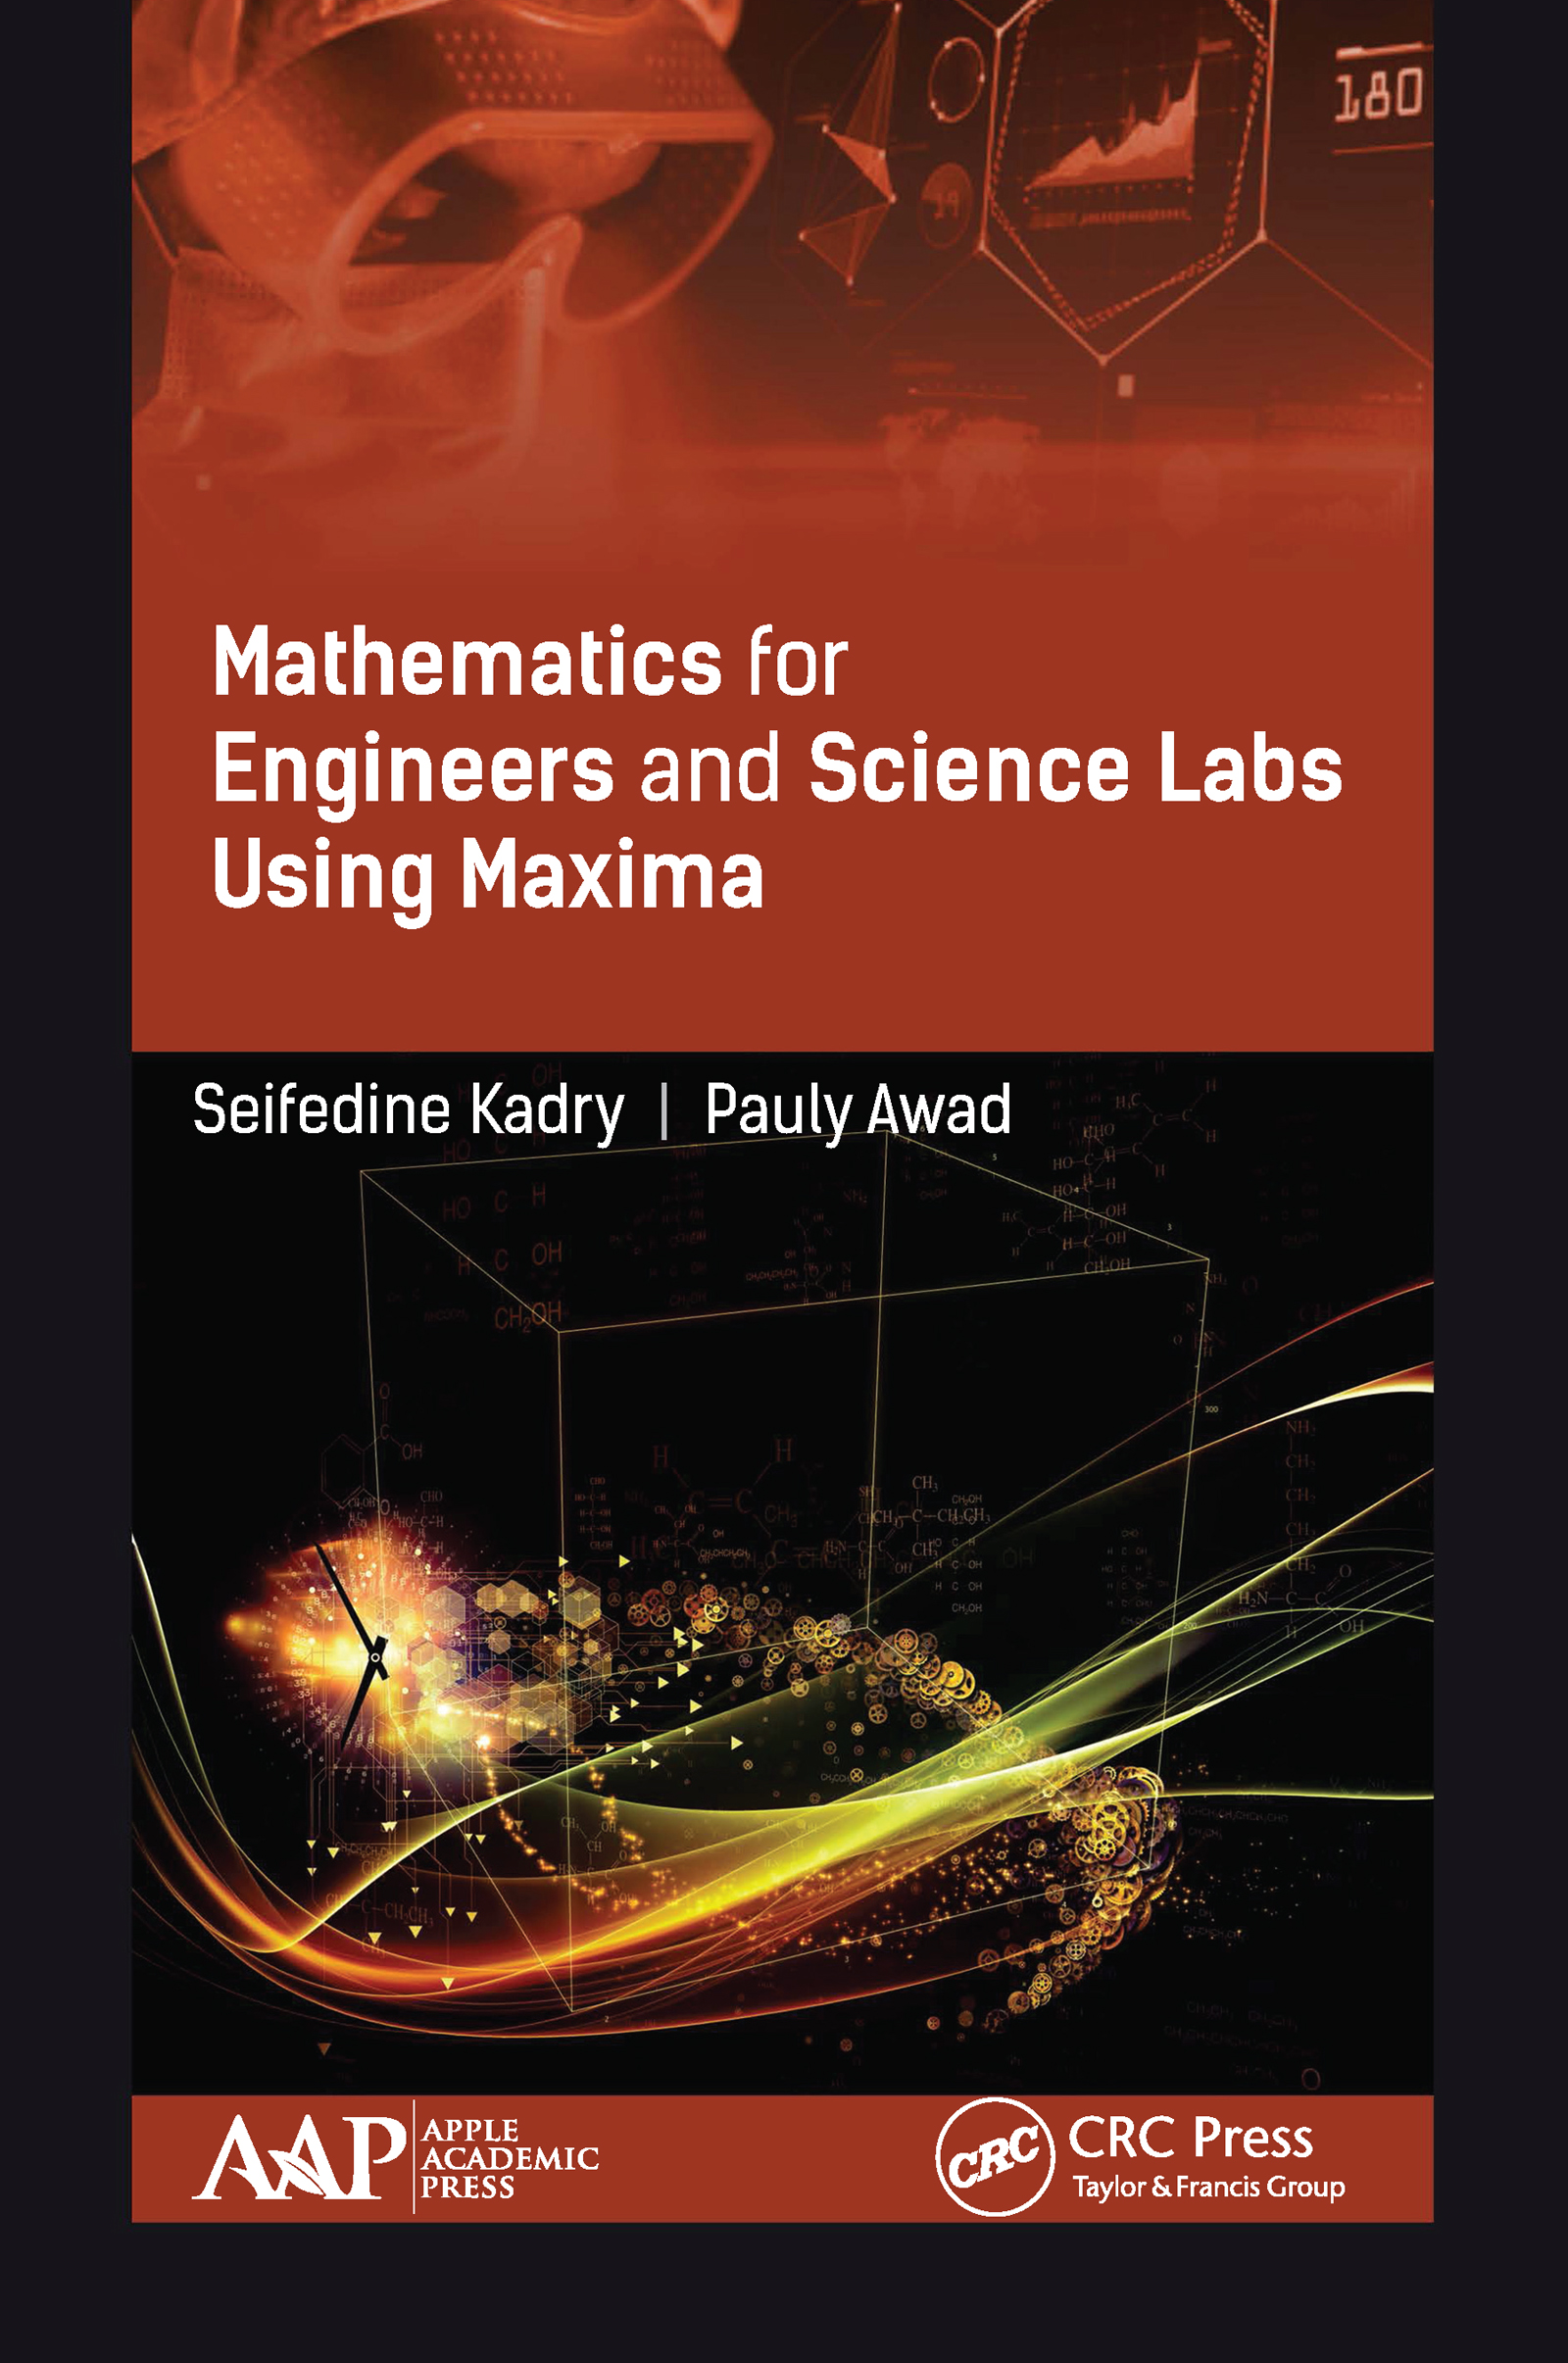 Mathematics for Engineers and Science Labs Using Maxima